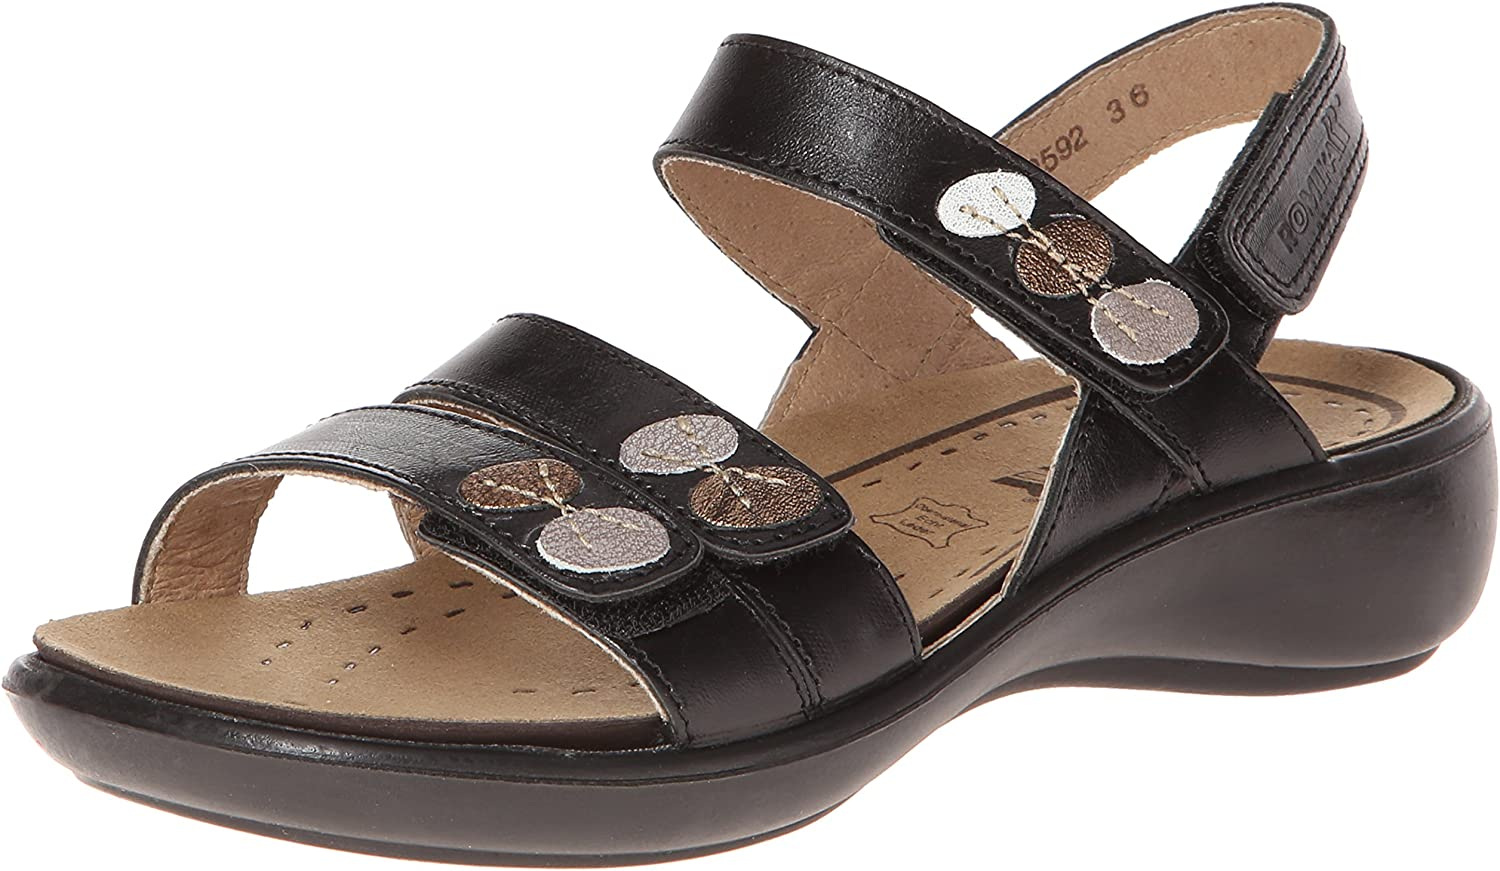 ROMIKA Women's Ibiza 55 Dress Sandal